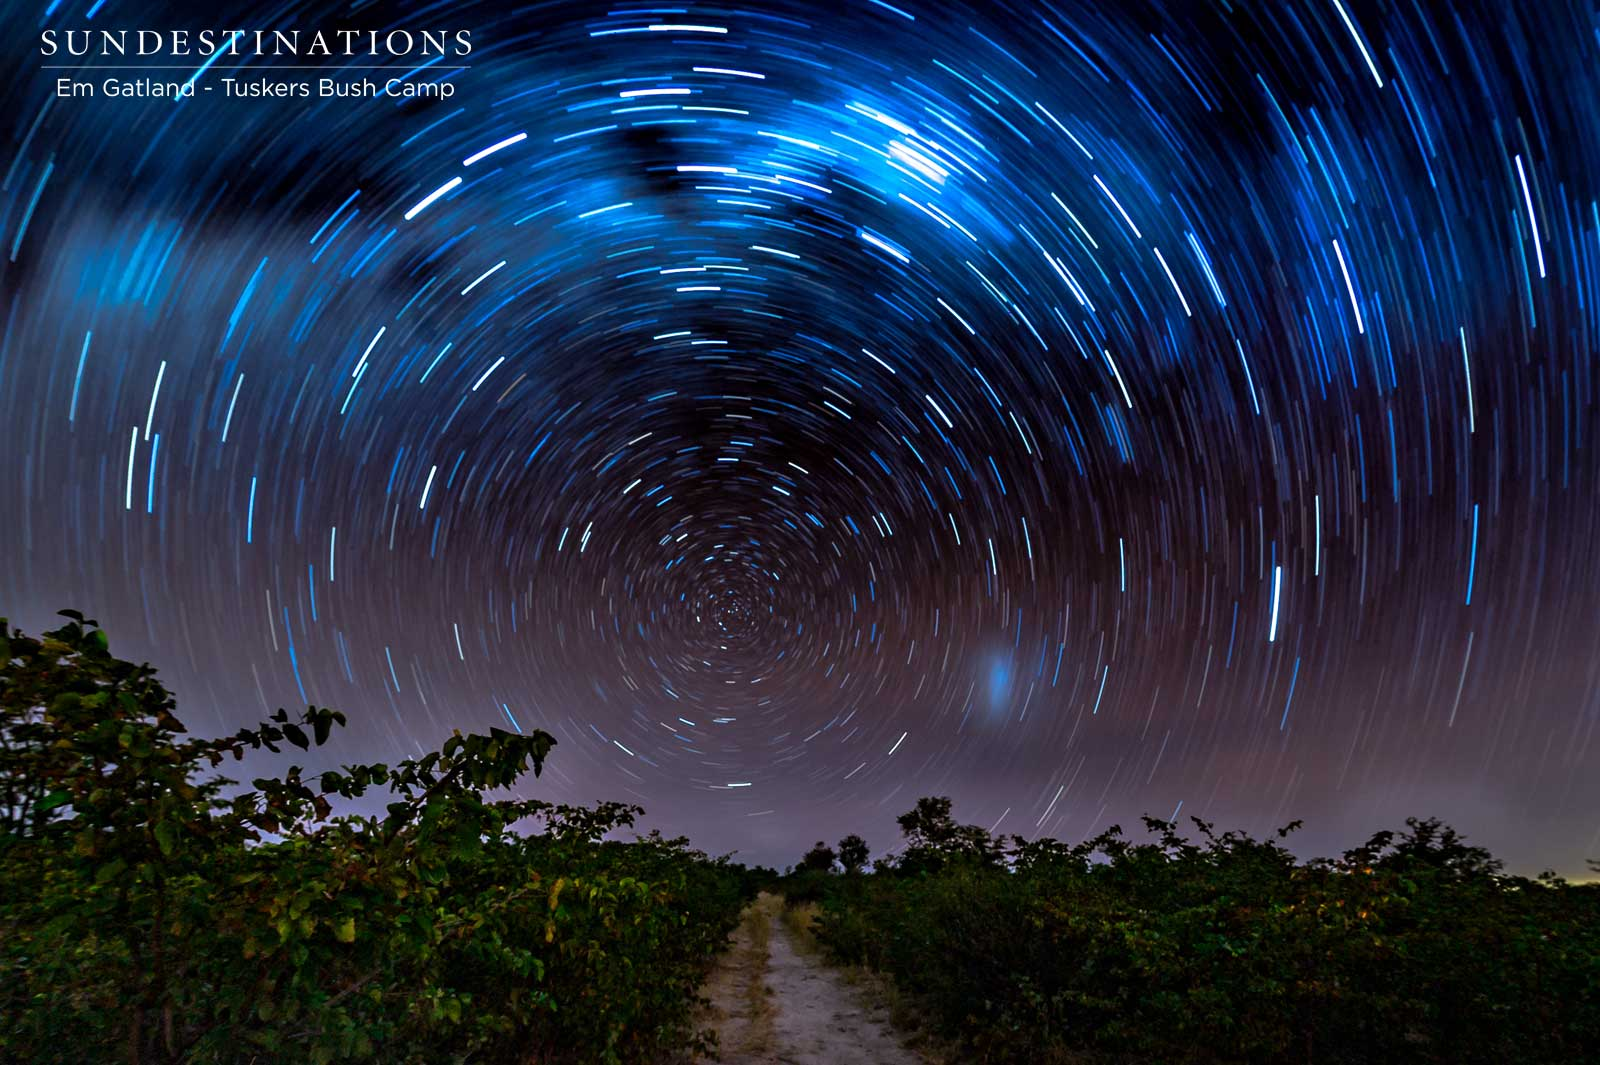 Star Trails at Tuskers Bush Camp